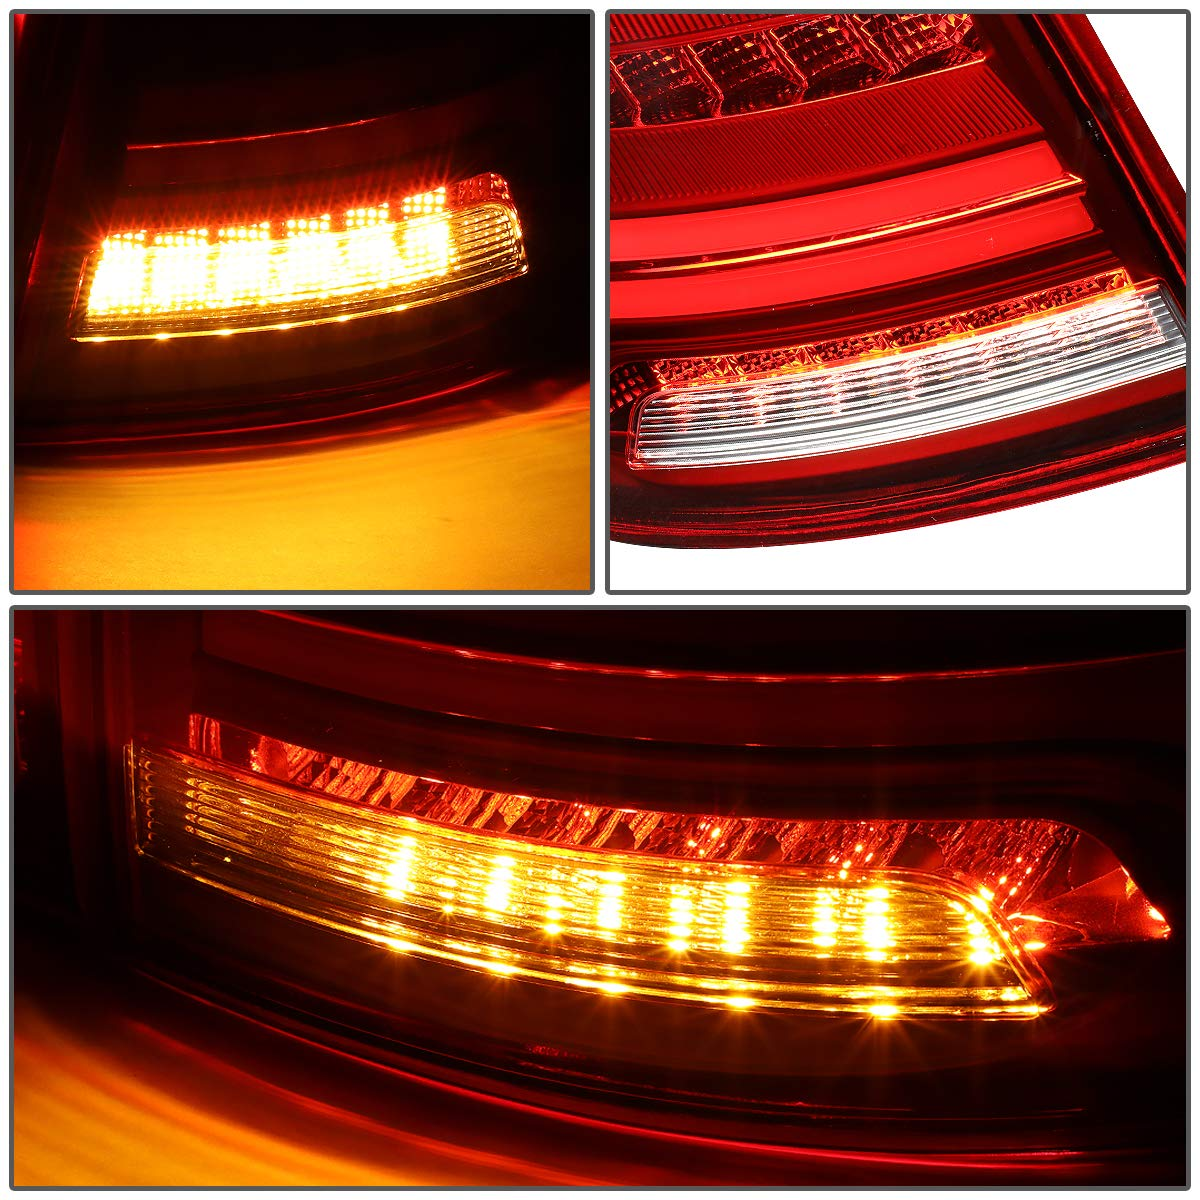 DNA Motoring TL-3DLB-VWJET12-RDCL 3D LED Bar+Sequential Signal Tail Light